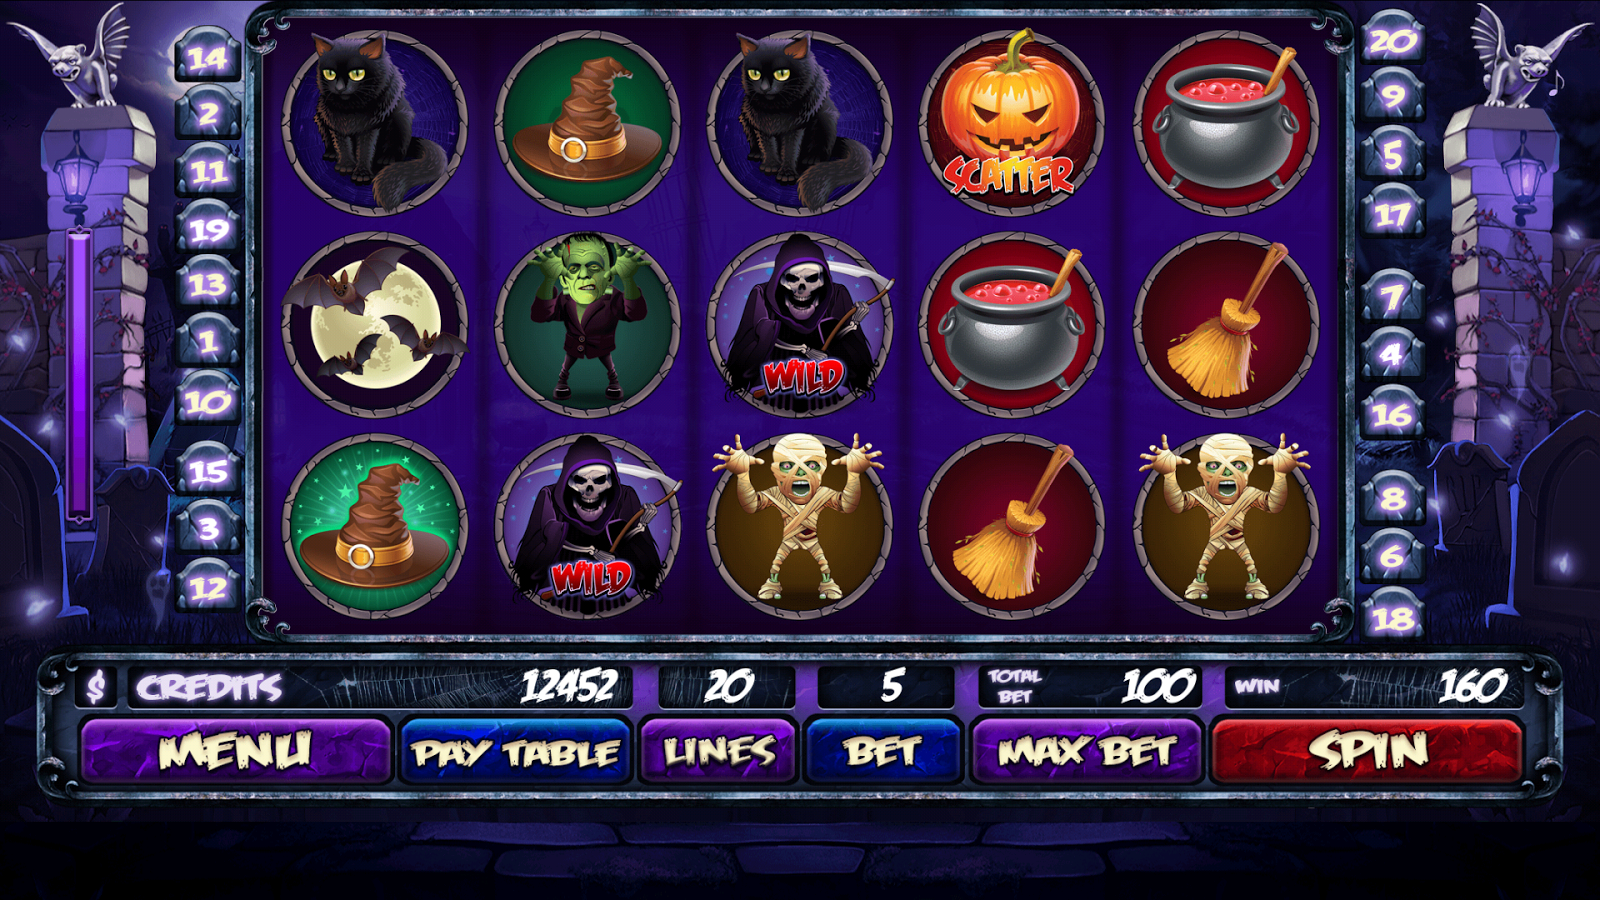 Kick A$$ Slot Machine - Play this Video Slot Online